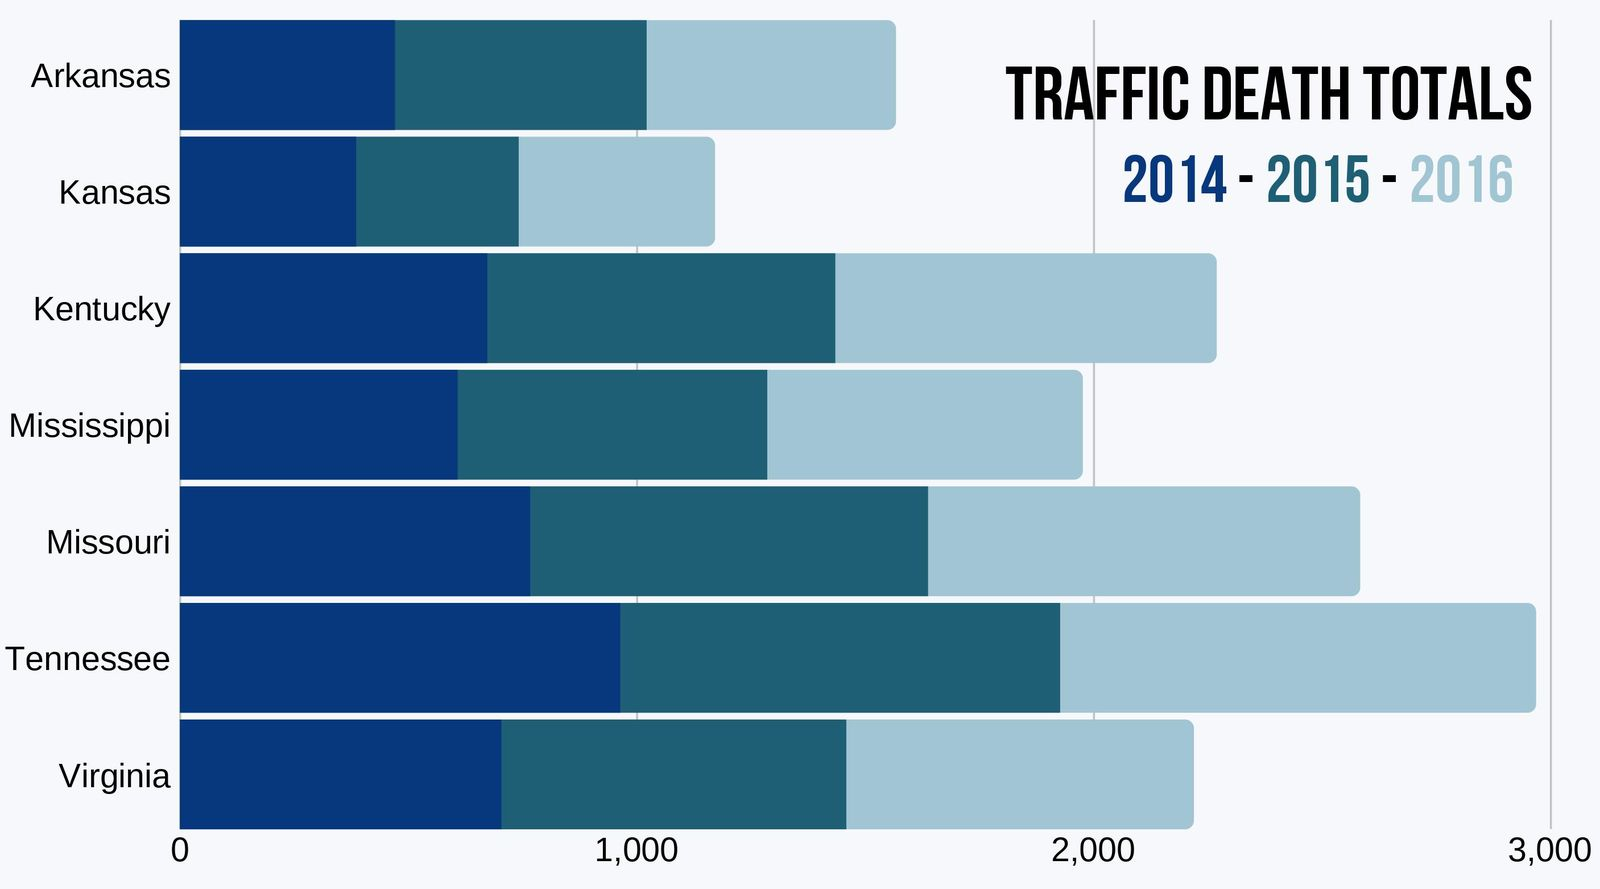 TN & Surrounding States - Traffic Deaths 2014 to 2016